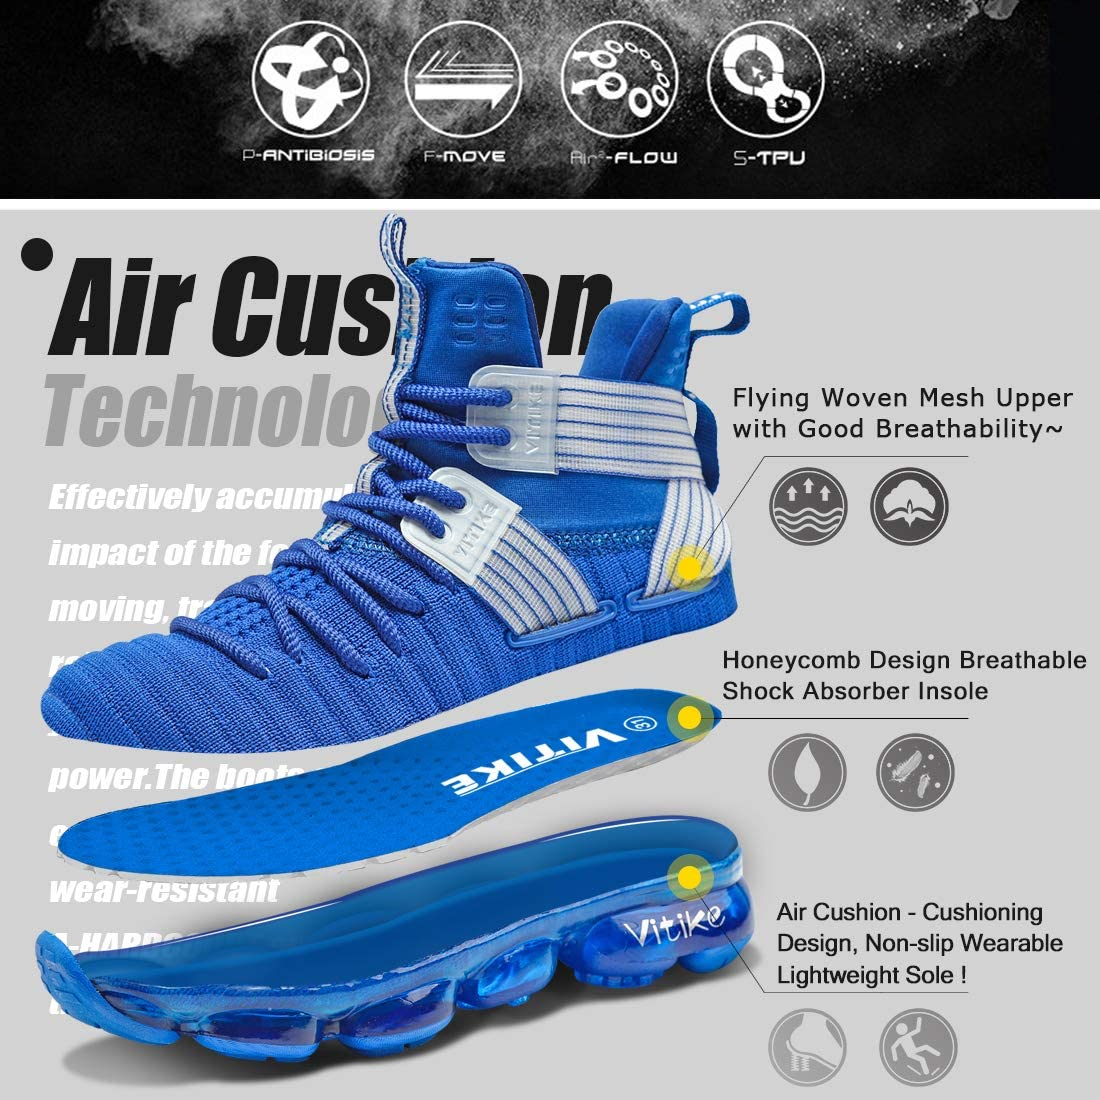 WETIKE Kids Basketball Culture Shoes Boys Air-Cushion Comfortable Girls Basketball Shoes Breathable Casual Fashion Kids Shoes Non-Slip Boys Shoes Durable High Tops for Boys Size 7 Blue